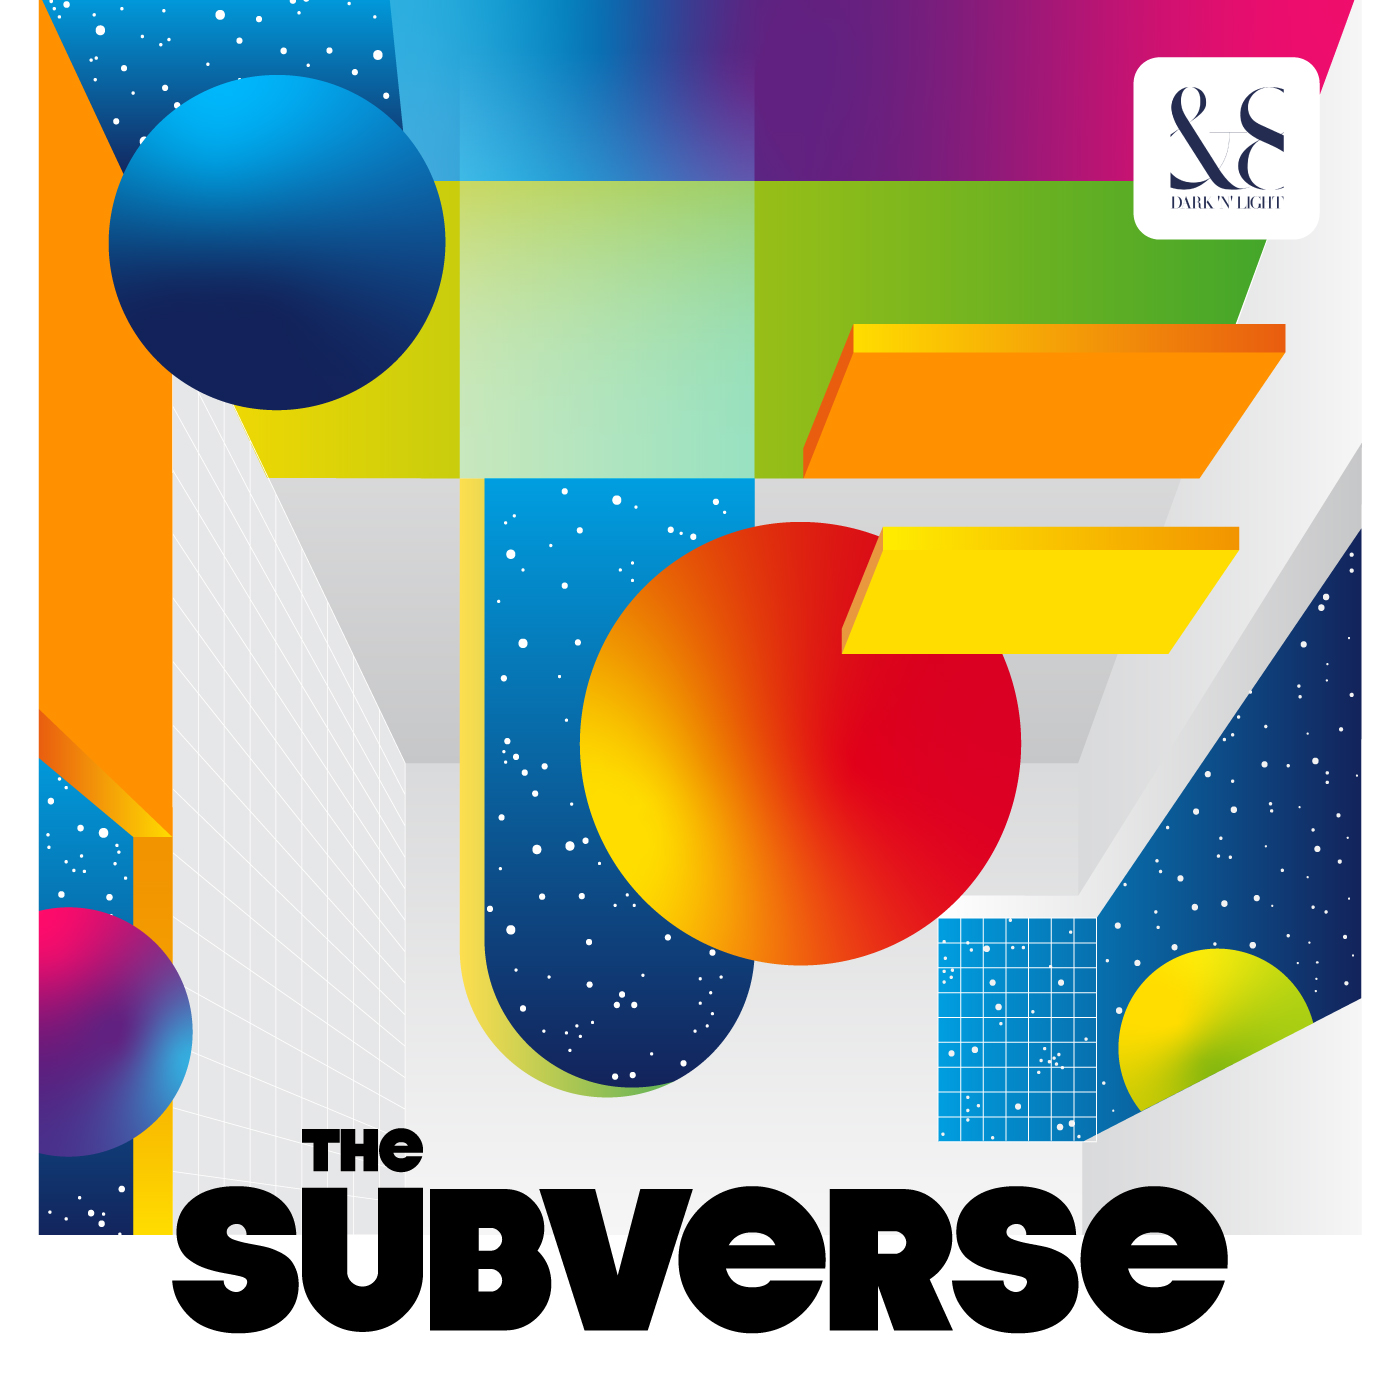 The Subverse